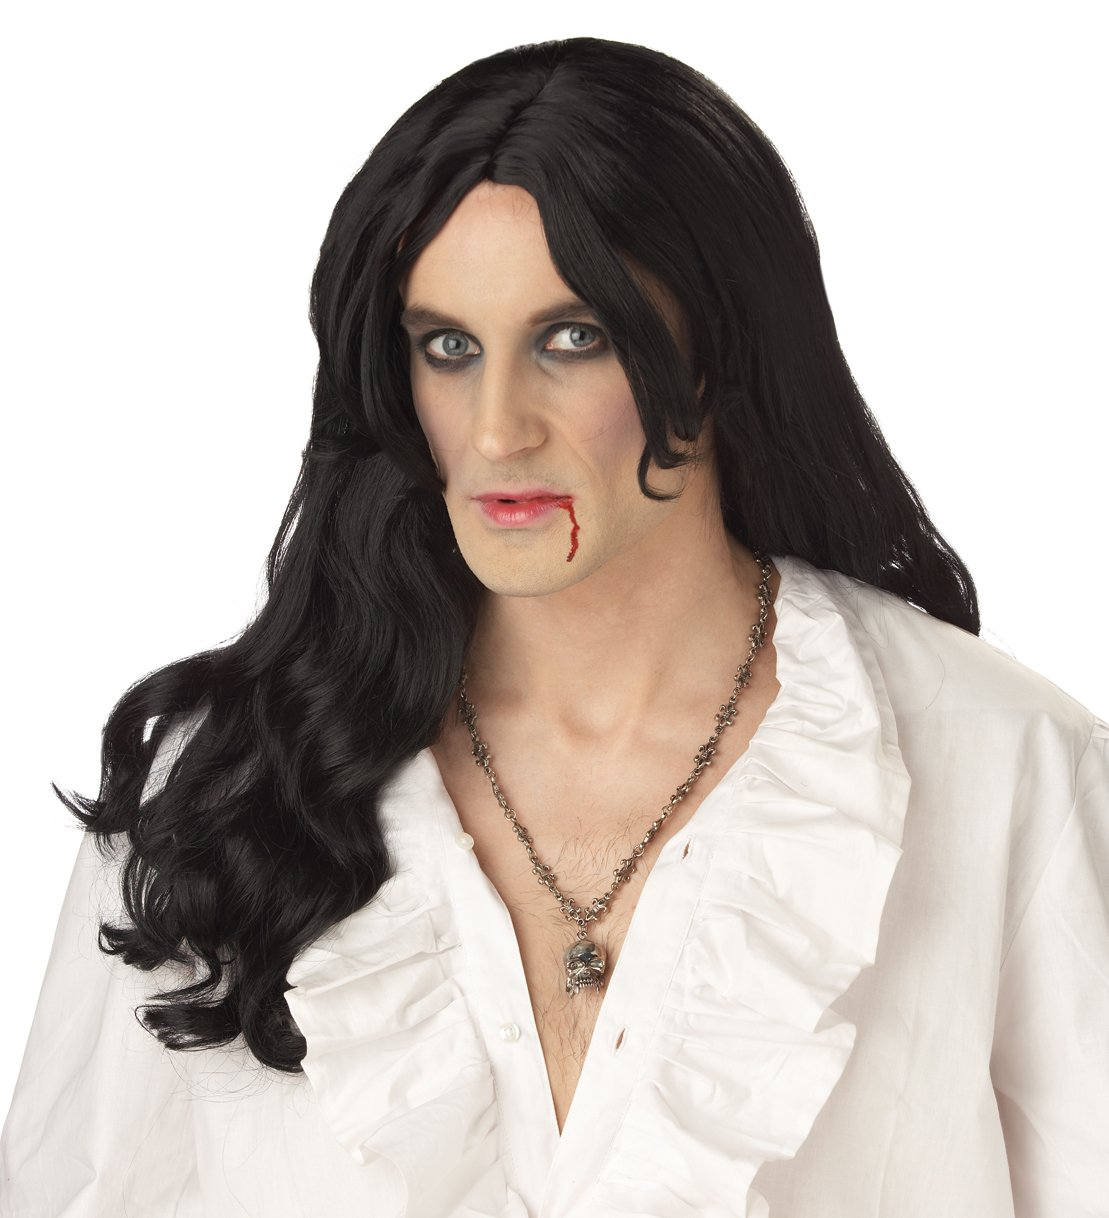 Dracula Old World Vampire Adult Costume Wig #70060